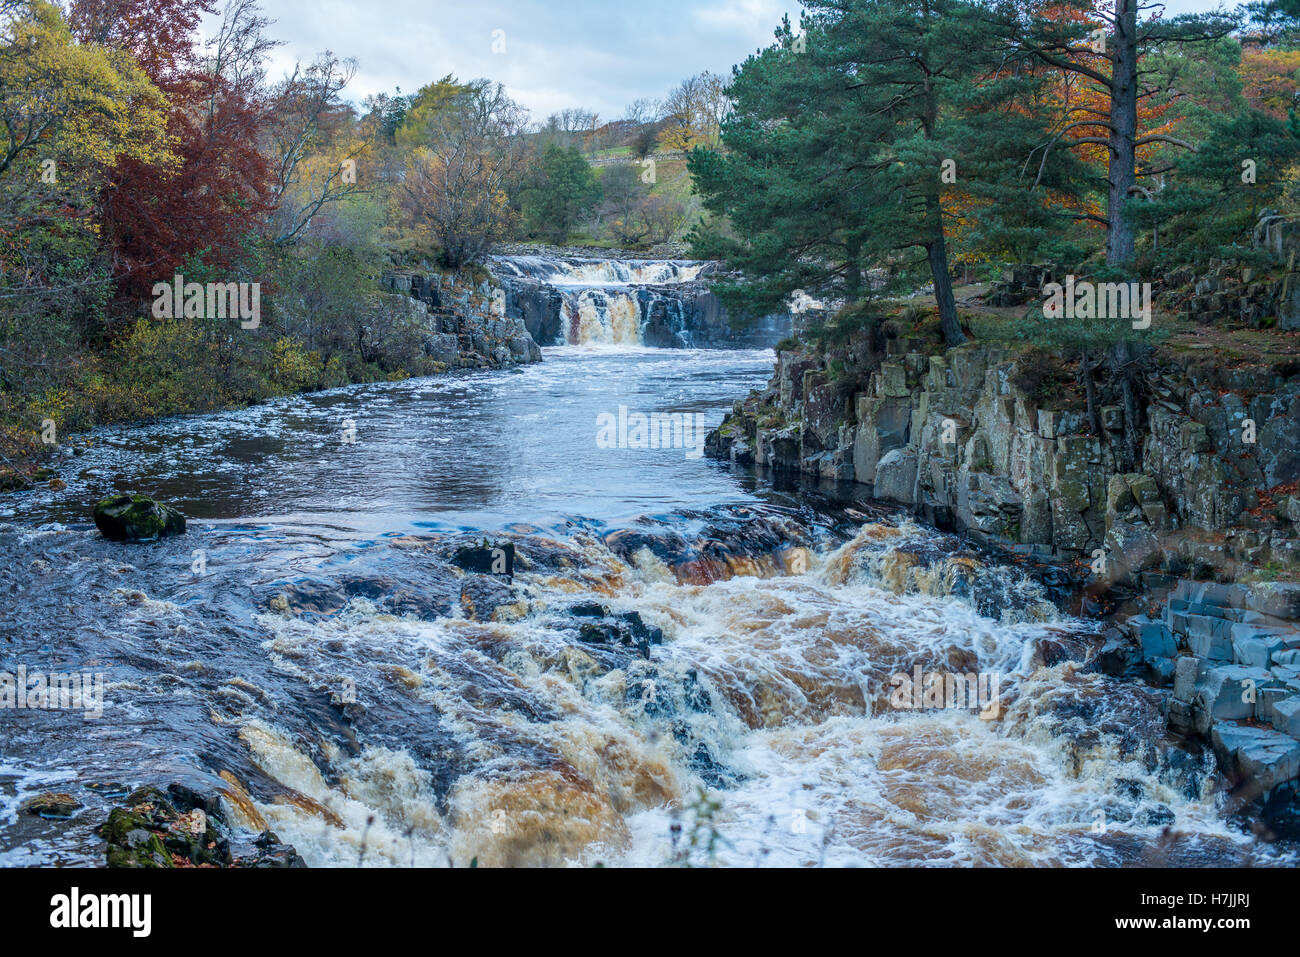 The River Tees running through Low Force Waterfall in Teesdale. - Stock Image